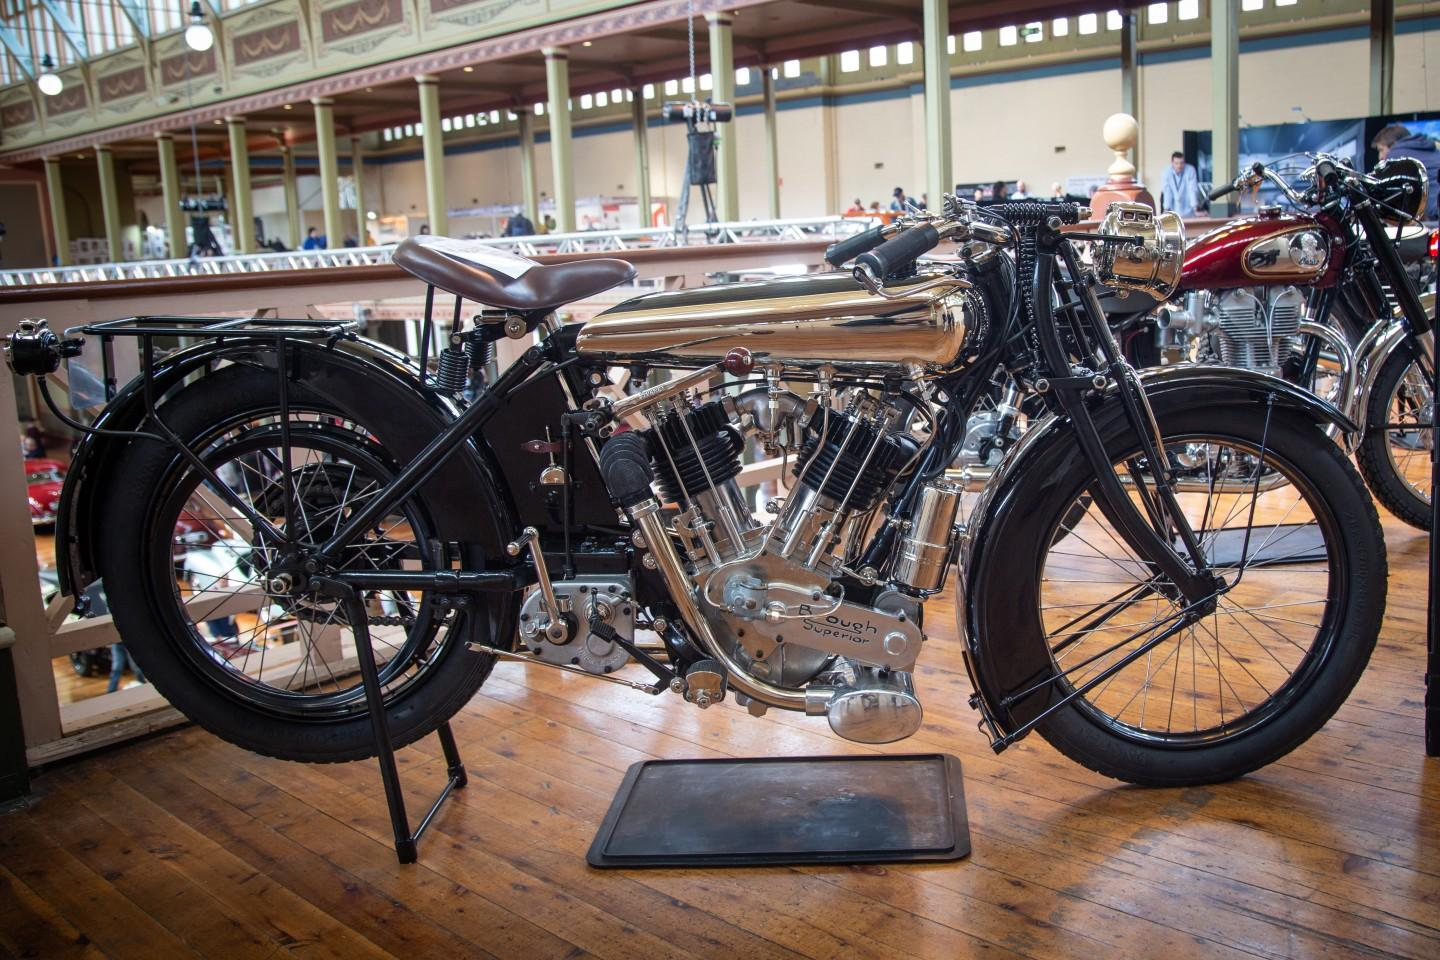 Preview The 2020 Las Vegas Motorcycle Auctions